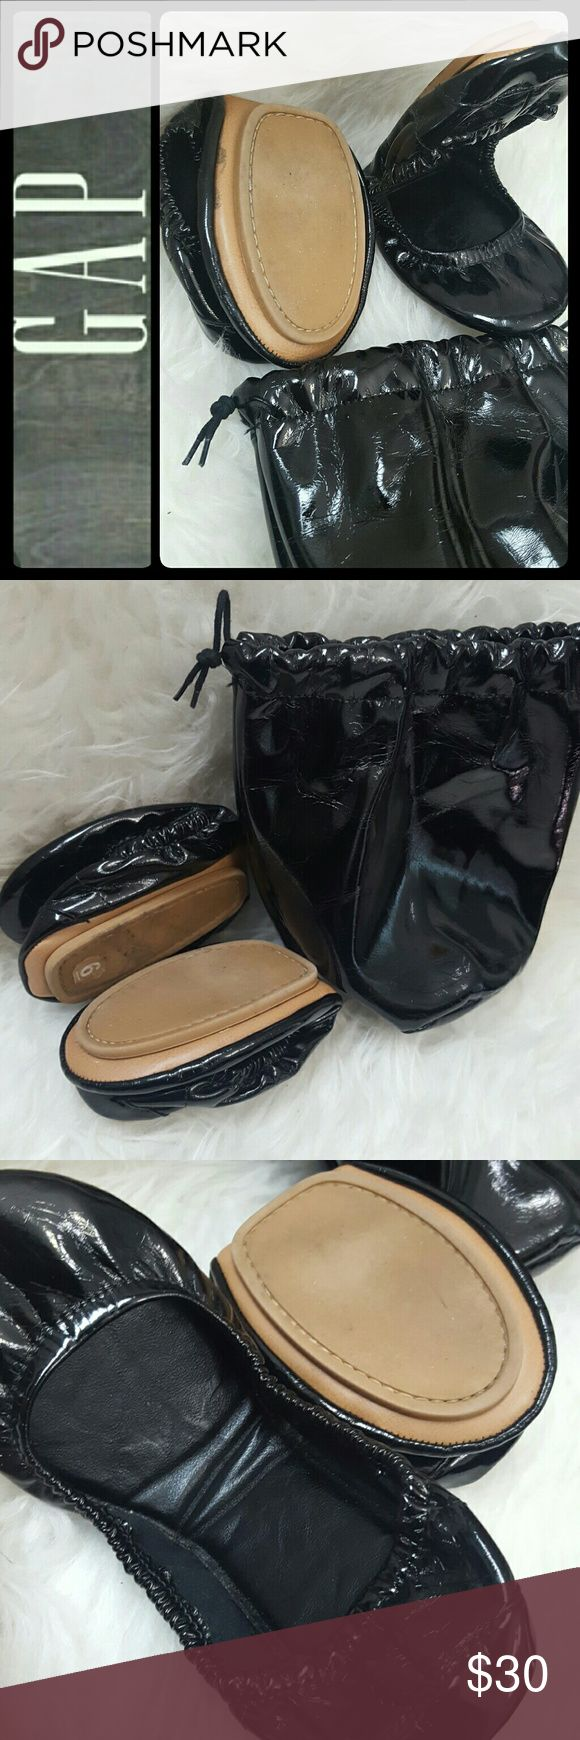 Gap Foldable Flat Shoes Gap Signature Foldable Flats in Easy Carry Bag! Faux Patent Leather Style with Tonal Stitching Details! This Pair of Flats Comes Handy Inside Its Own Dust Bag! Perfect for Prom or Wedding Events to Change Into from Wearing Those High Heels! Very Compact and Can Fit In Your Regular Purse! Used in Mint Condition! Size 6 GAP Shoes Flats & Loafers